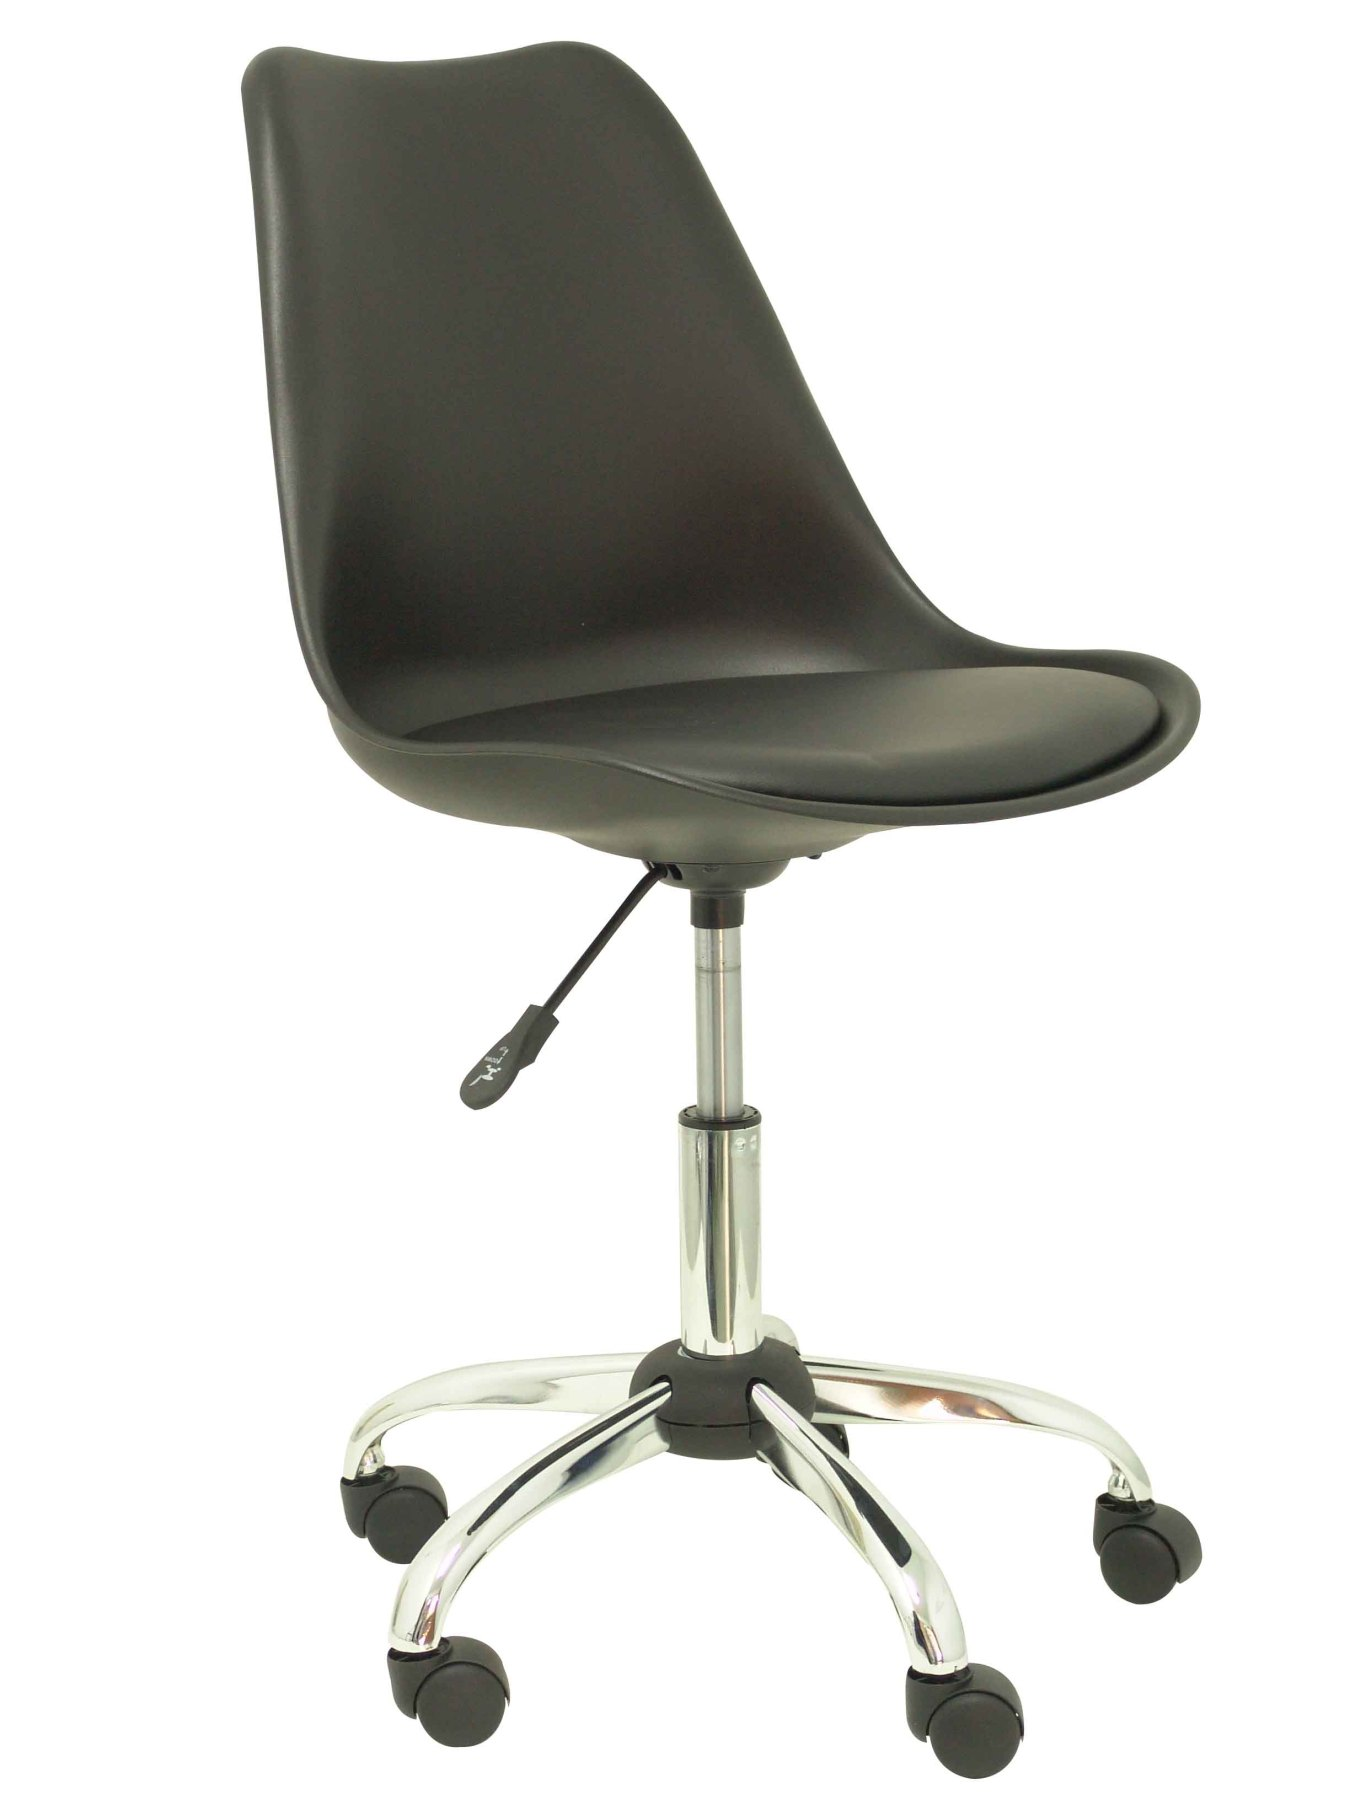 Office Chair Ergonomic Adjustable Height And Swivel 360 °-Seat And Back Black Color Plastic, C